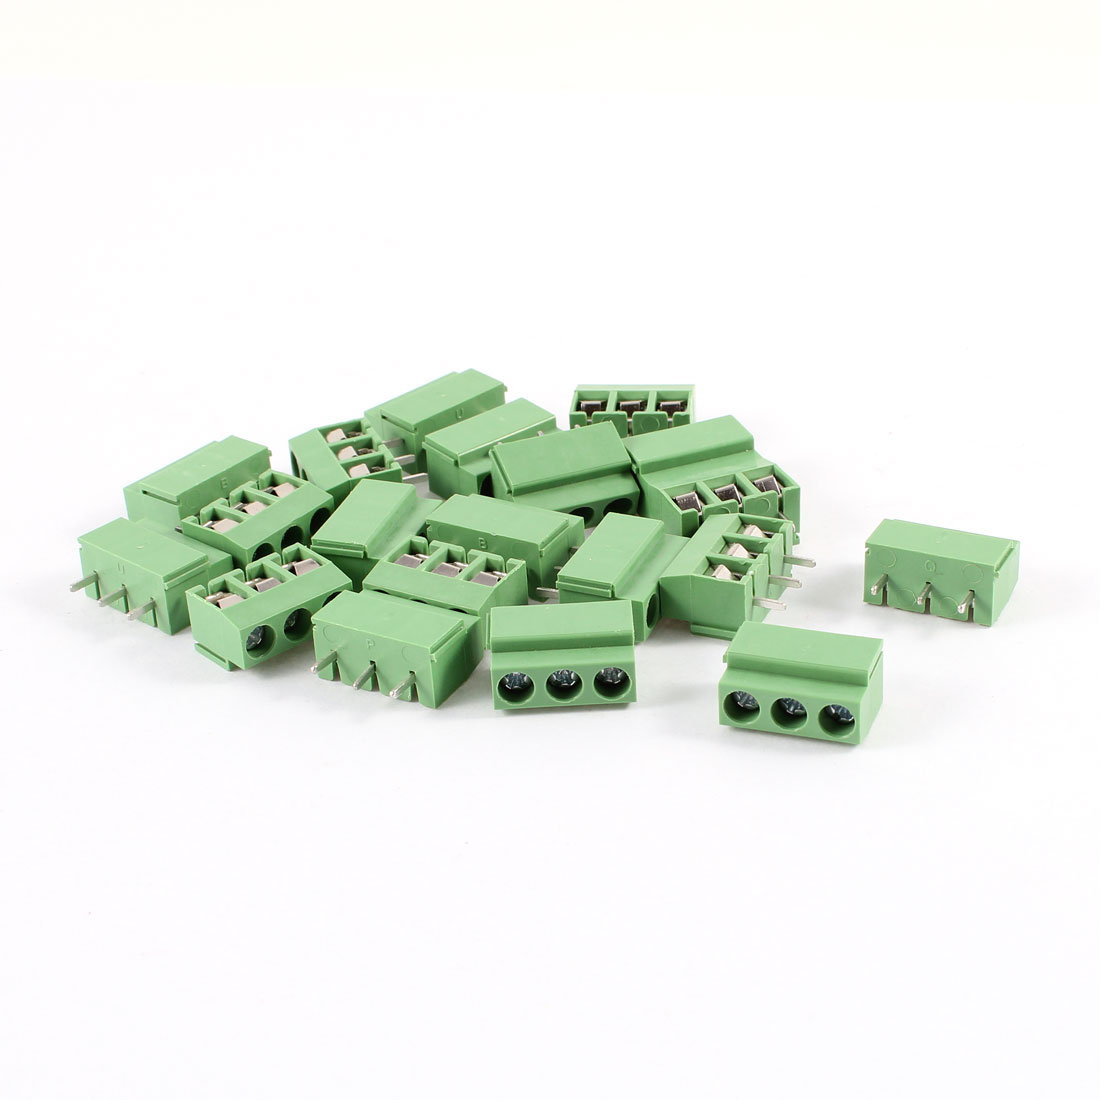 20Pcs 3 Pole 5mm Pitch PCB Mount Screw Terminal Block 8A 250V